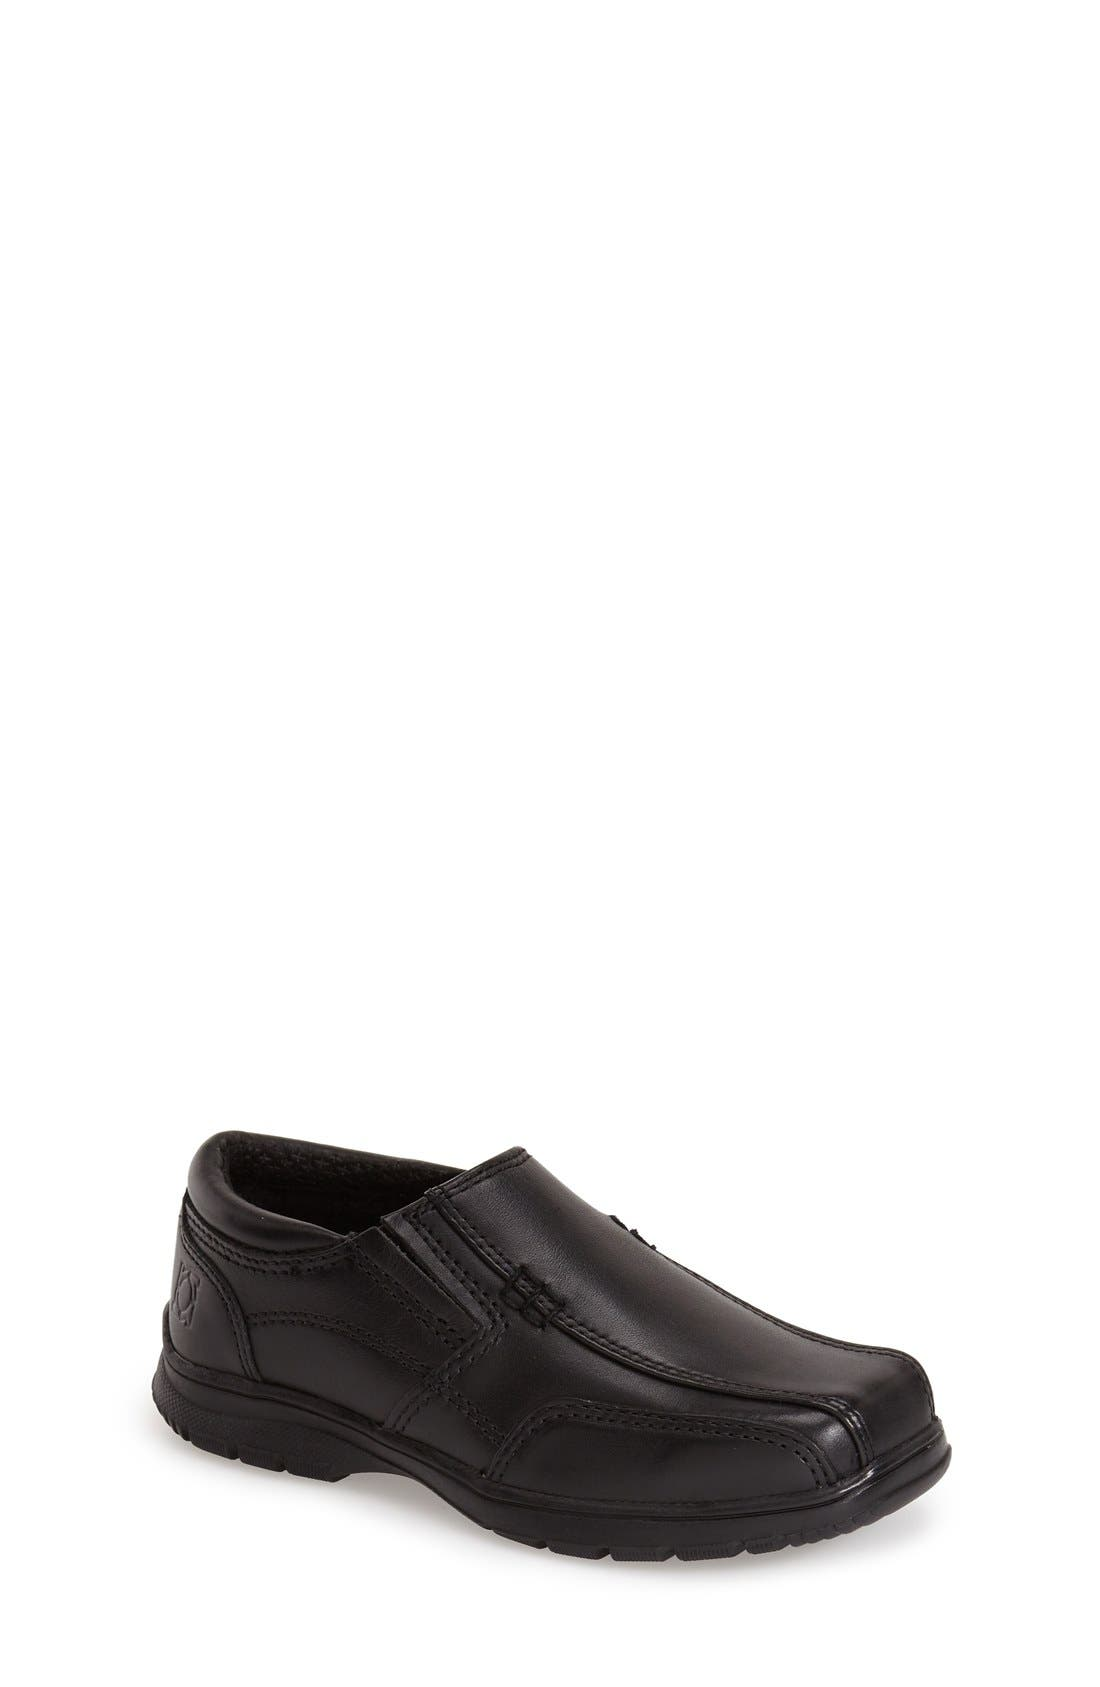 Reaction Kenneth Cole'Check N Check' Loafer,                         Main,                         color, 001